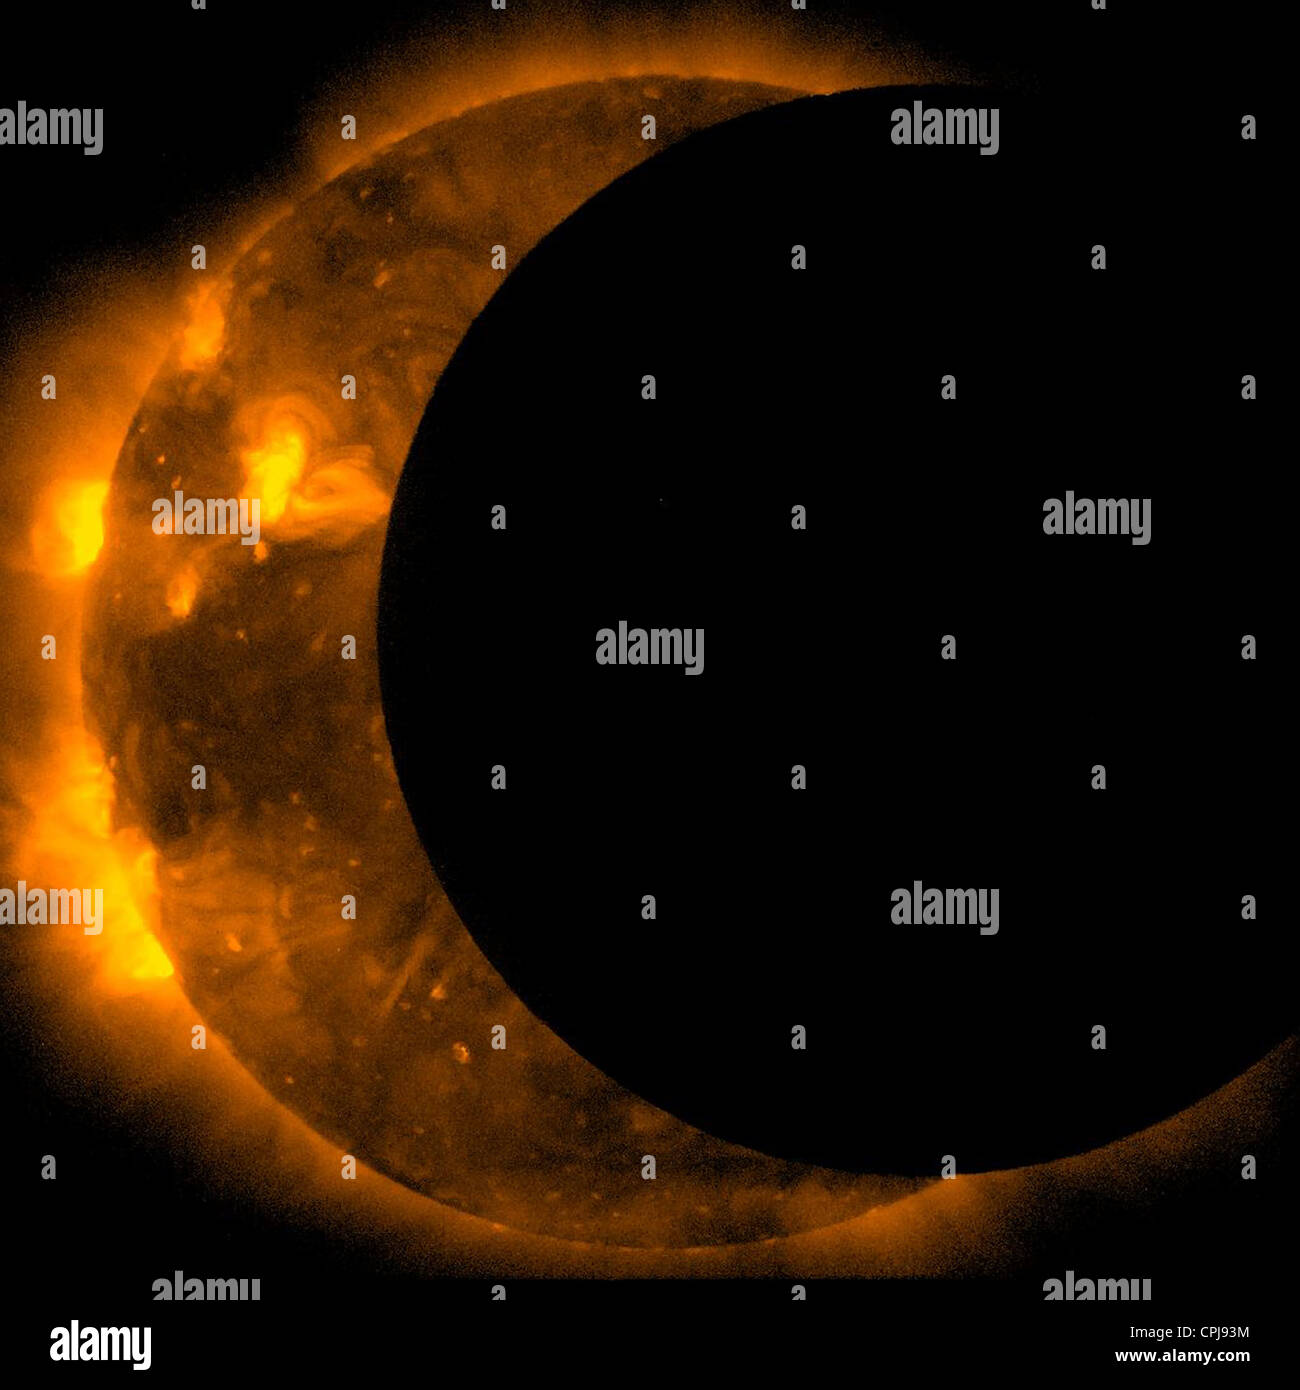 Image captured in space of the annular eclipse of the Sun taken by the Hinode mission May 20, 2012.  During - Stock Image